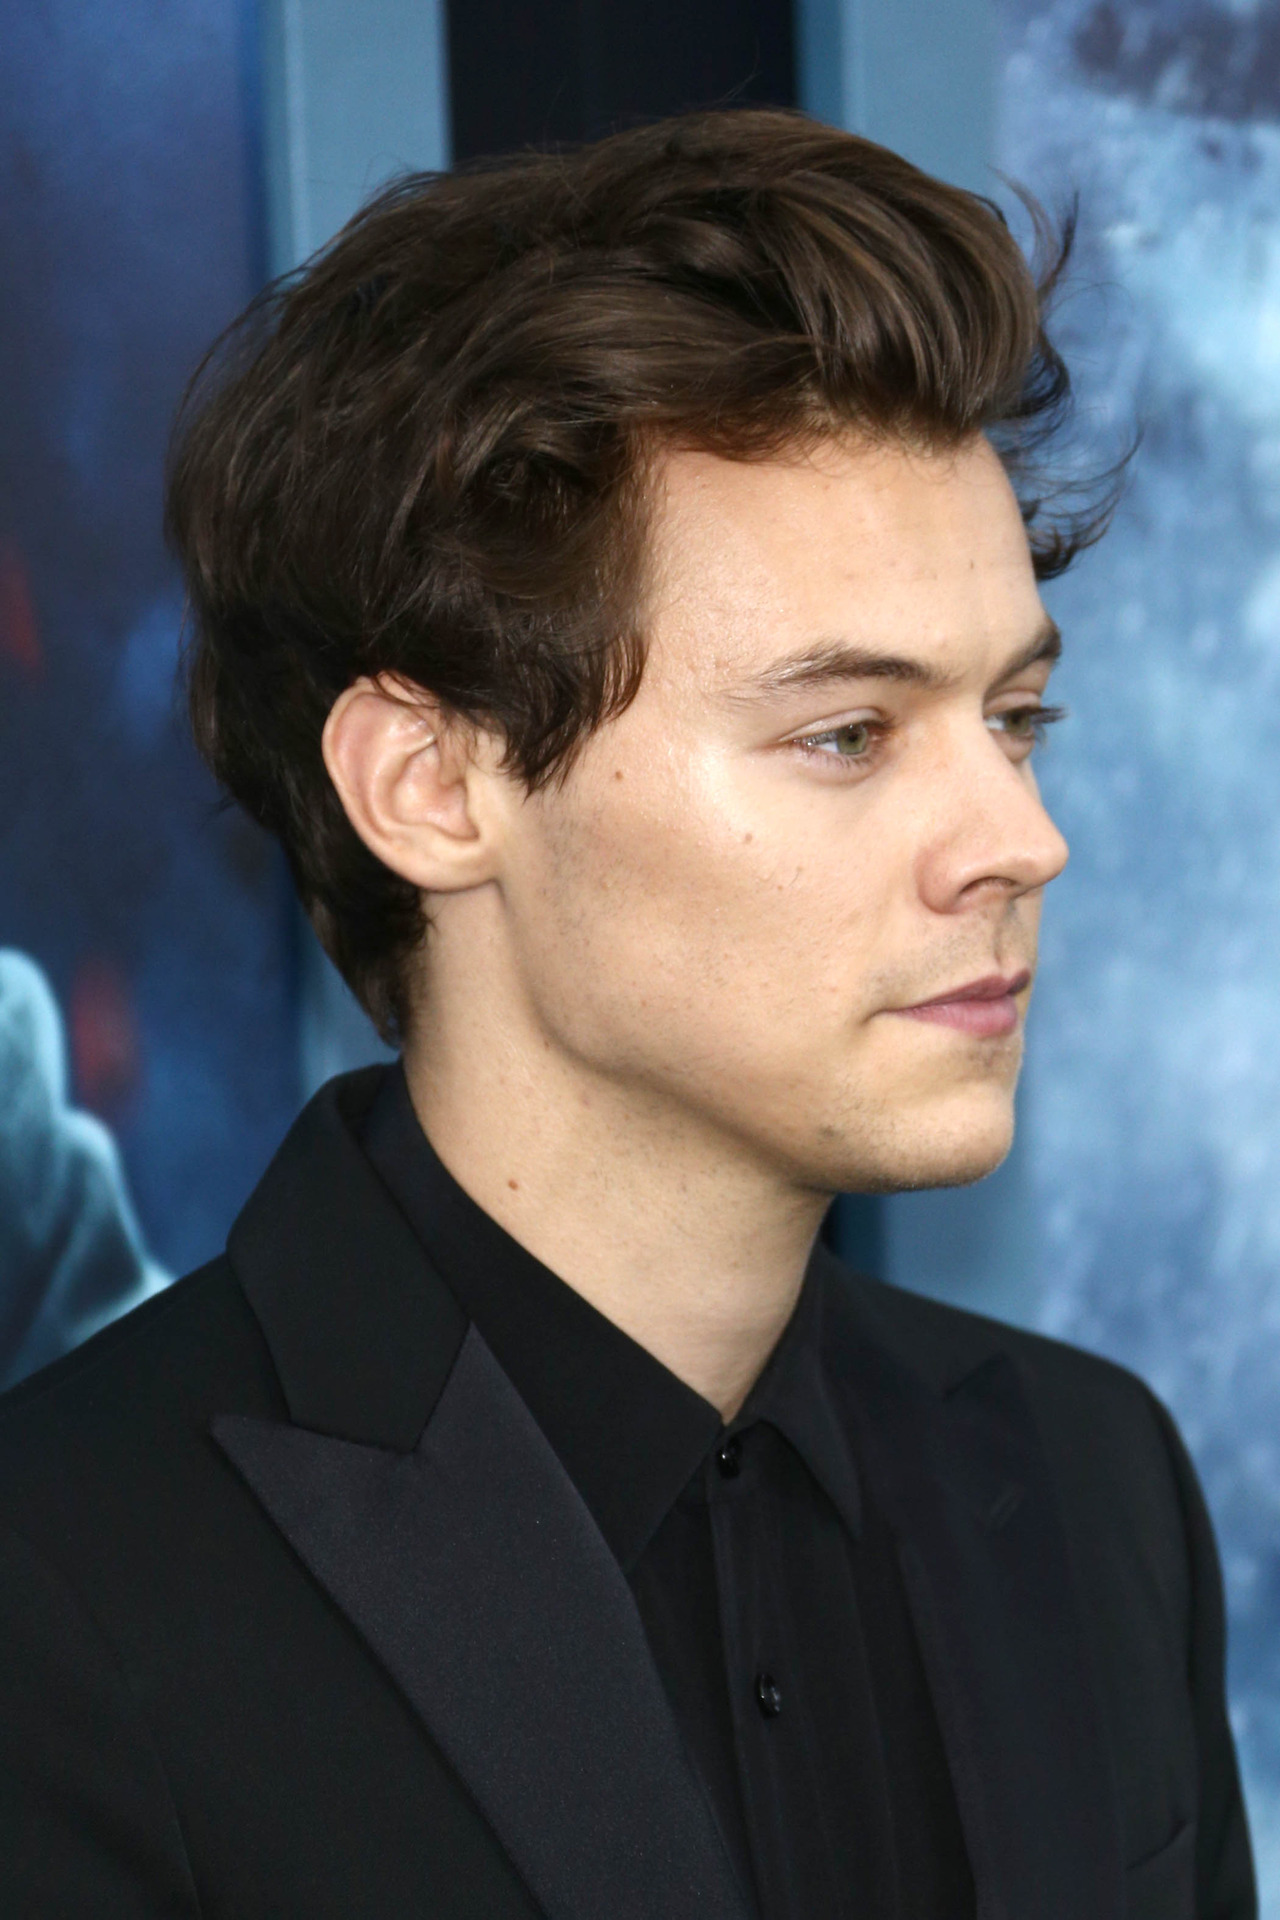 hair styles at home harry styles at the new york premiere of dunkirk july 18 4540